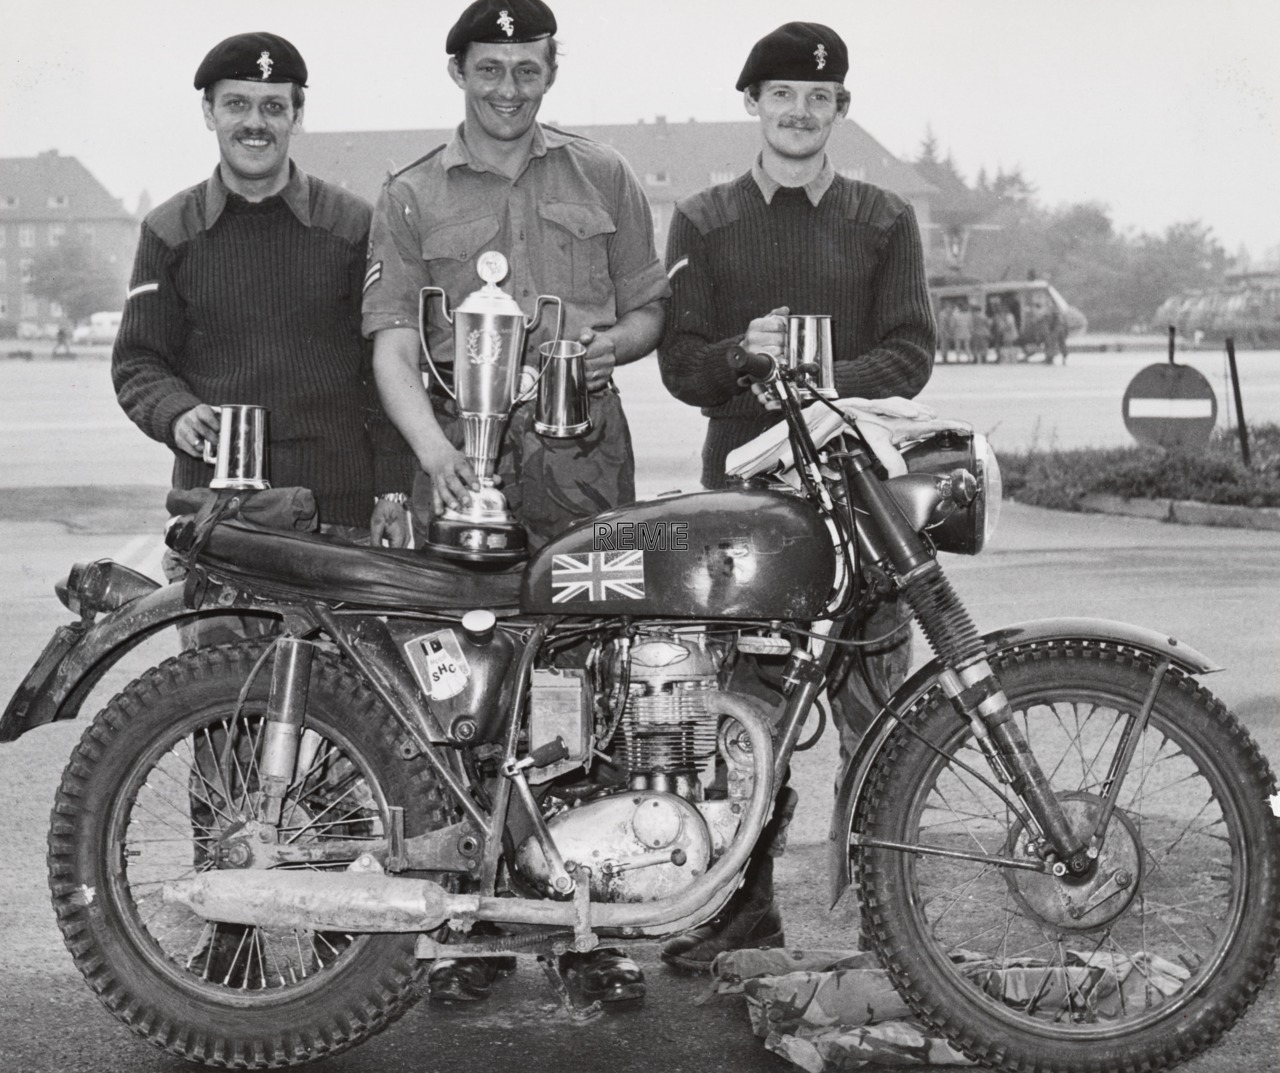 8 Regiment Royal Corps of Transport Workshop, British Army Of the Rhine Motor Cycle Championships Winners, 1976.